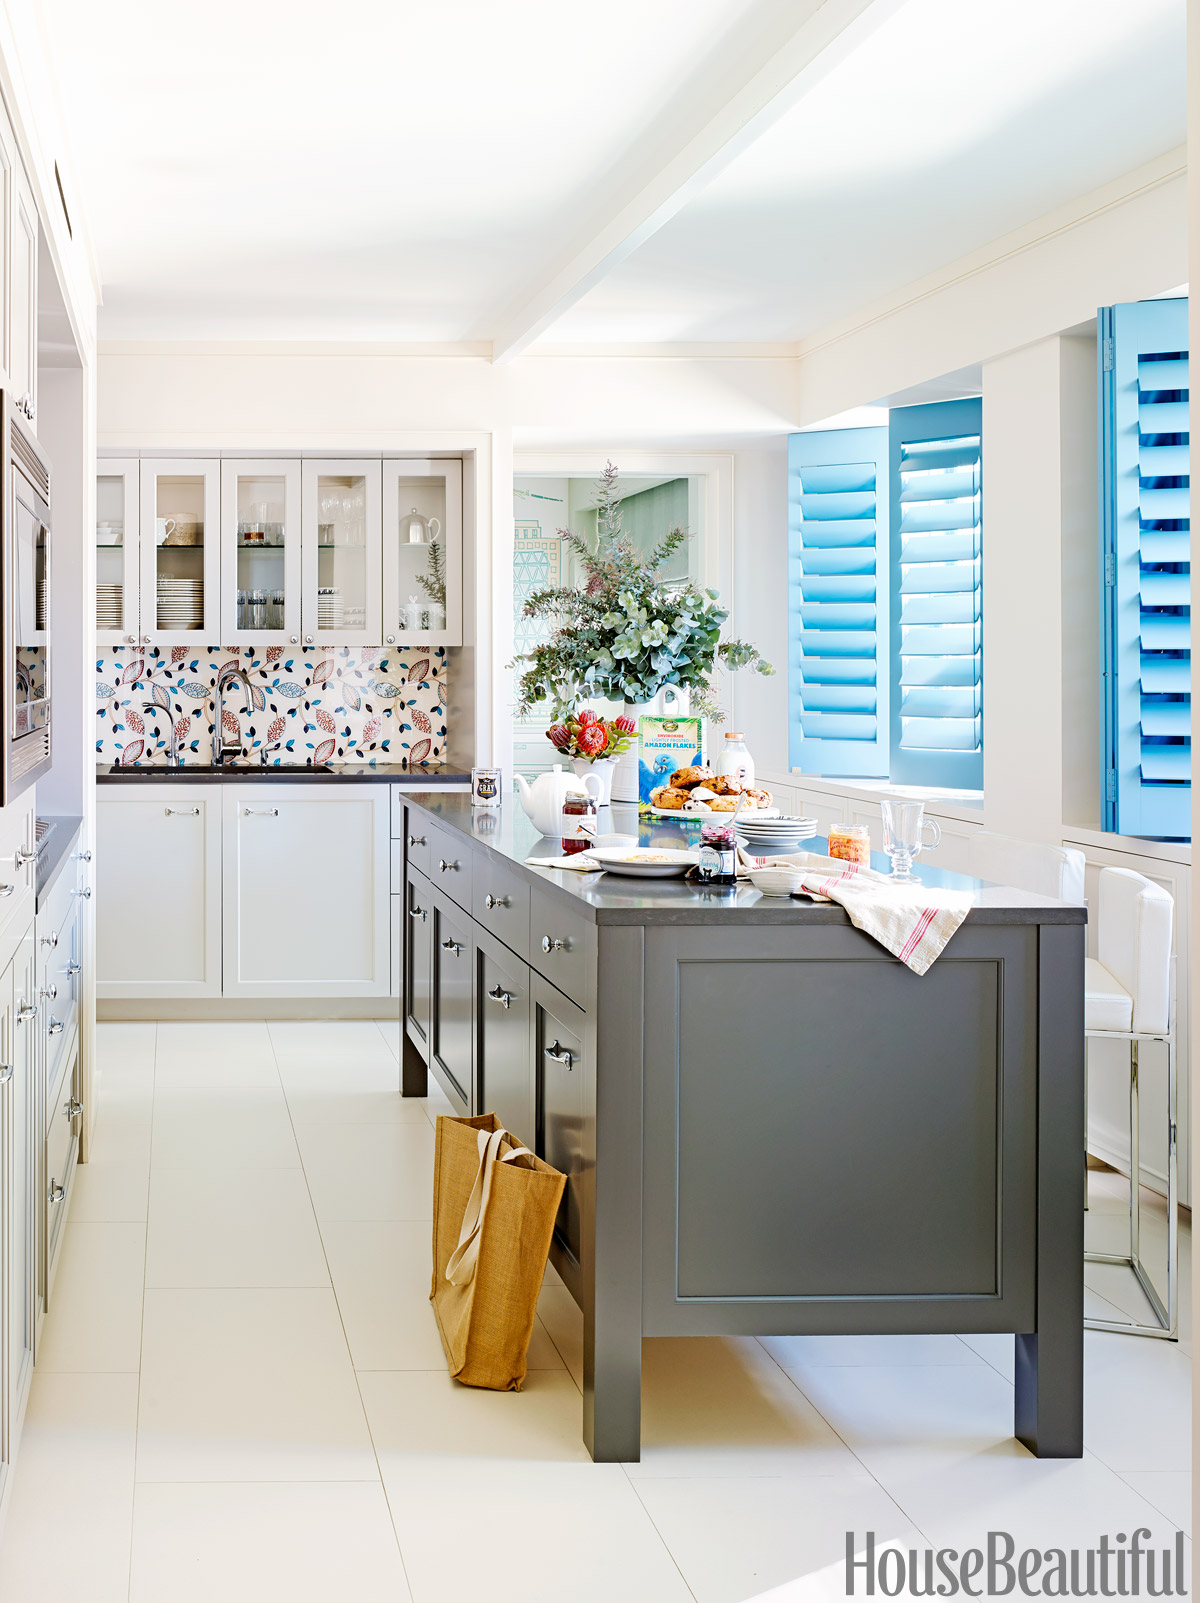 Perfect Designer Kitchens Kitchen Design Ideas How To Design Your Kitchen Yizmhrc  With Pictures Of Designer Kitchens